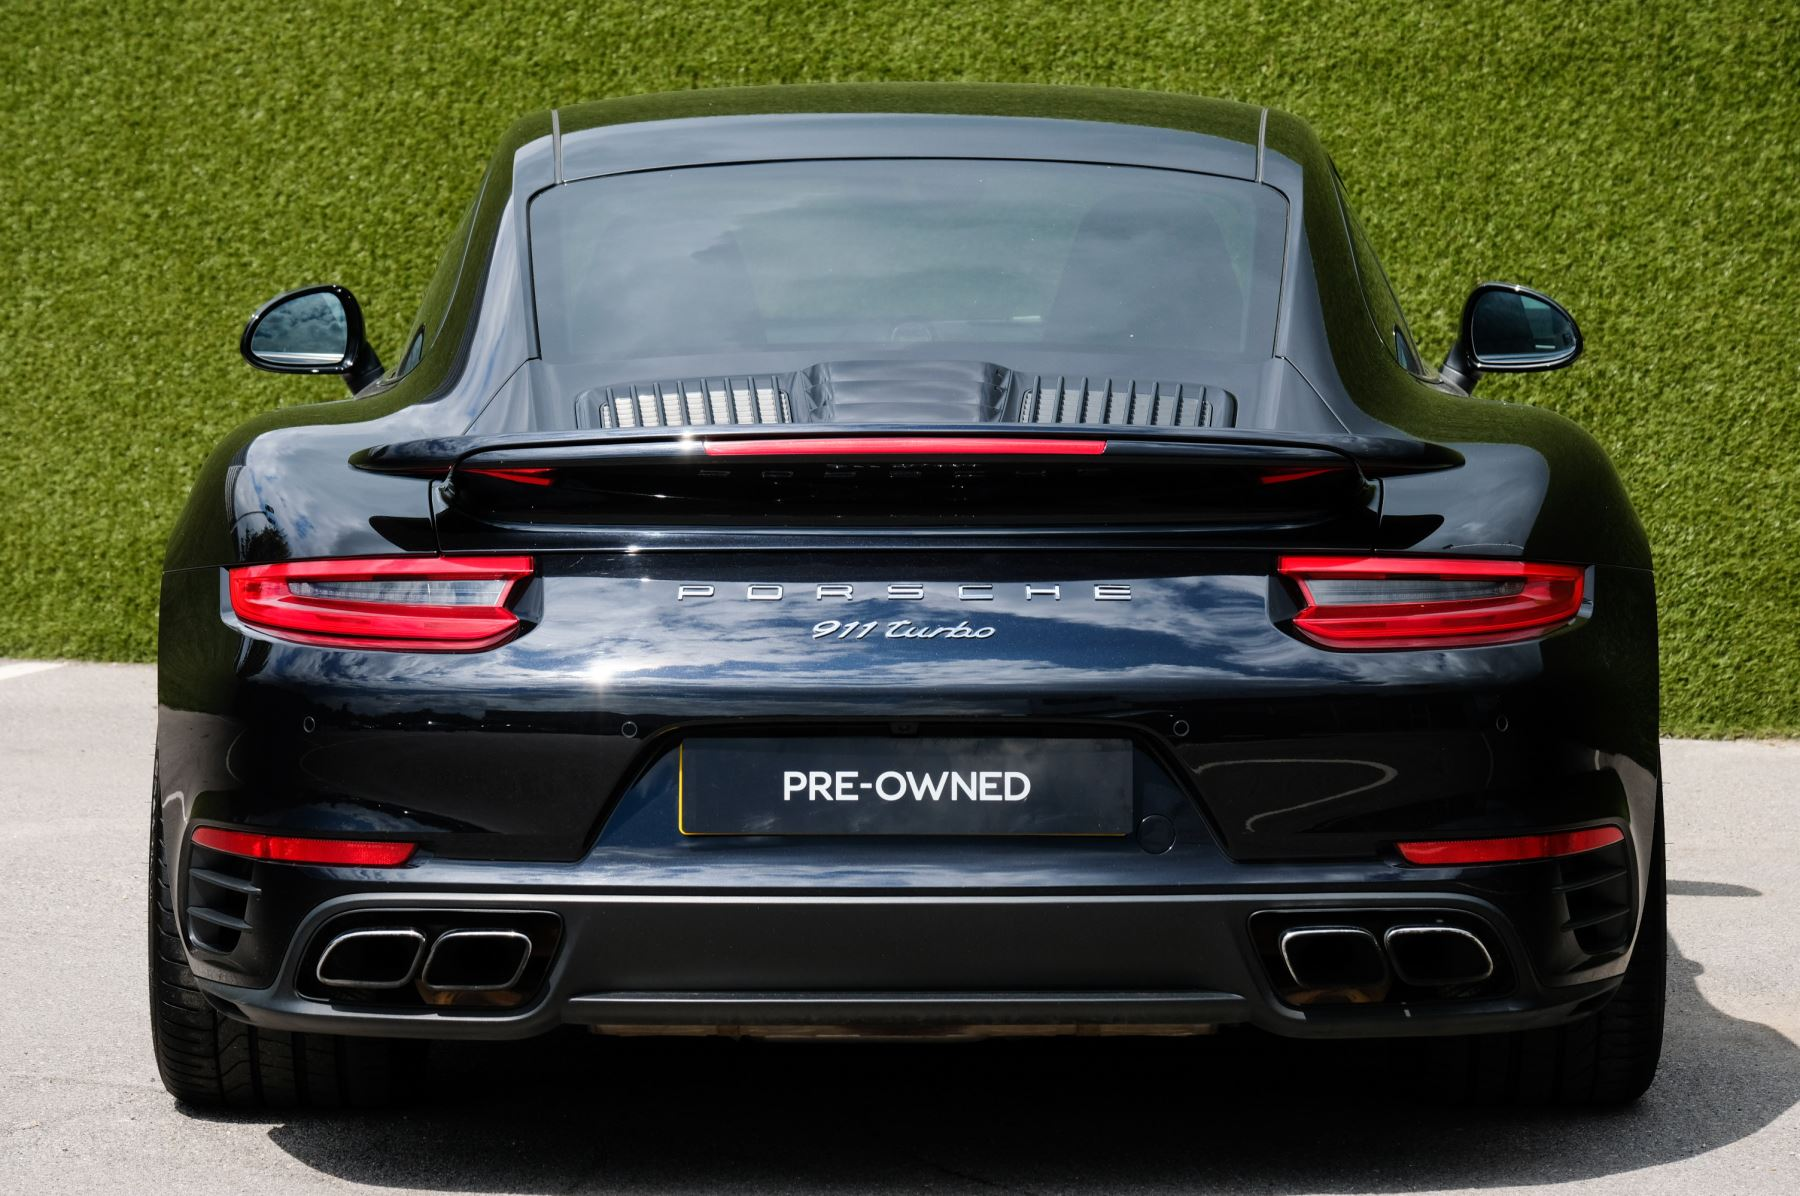 Porsche 911 PDK - Carbon interior package - Privacy Glass - 20 inch Sport Classic wheels image 4